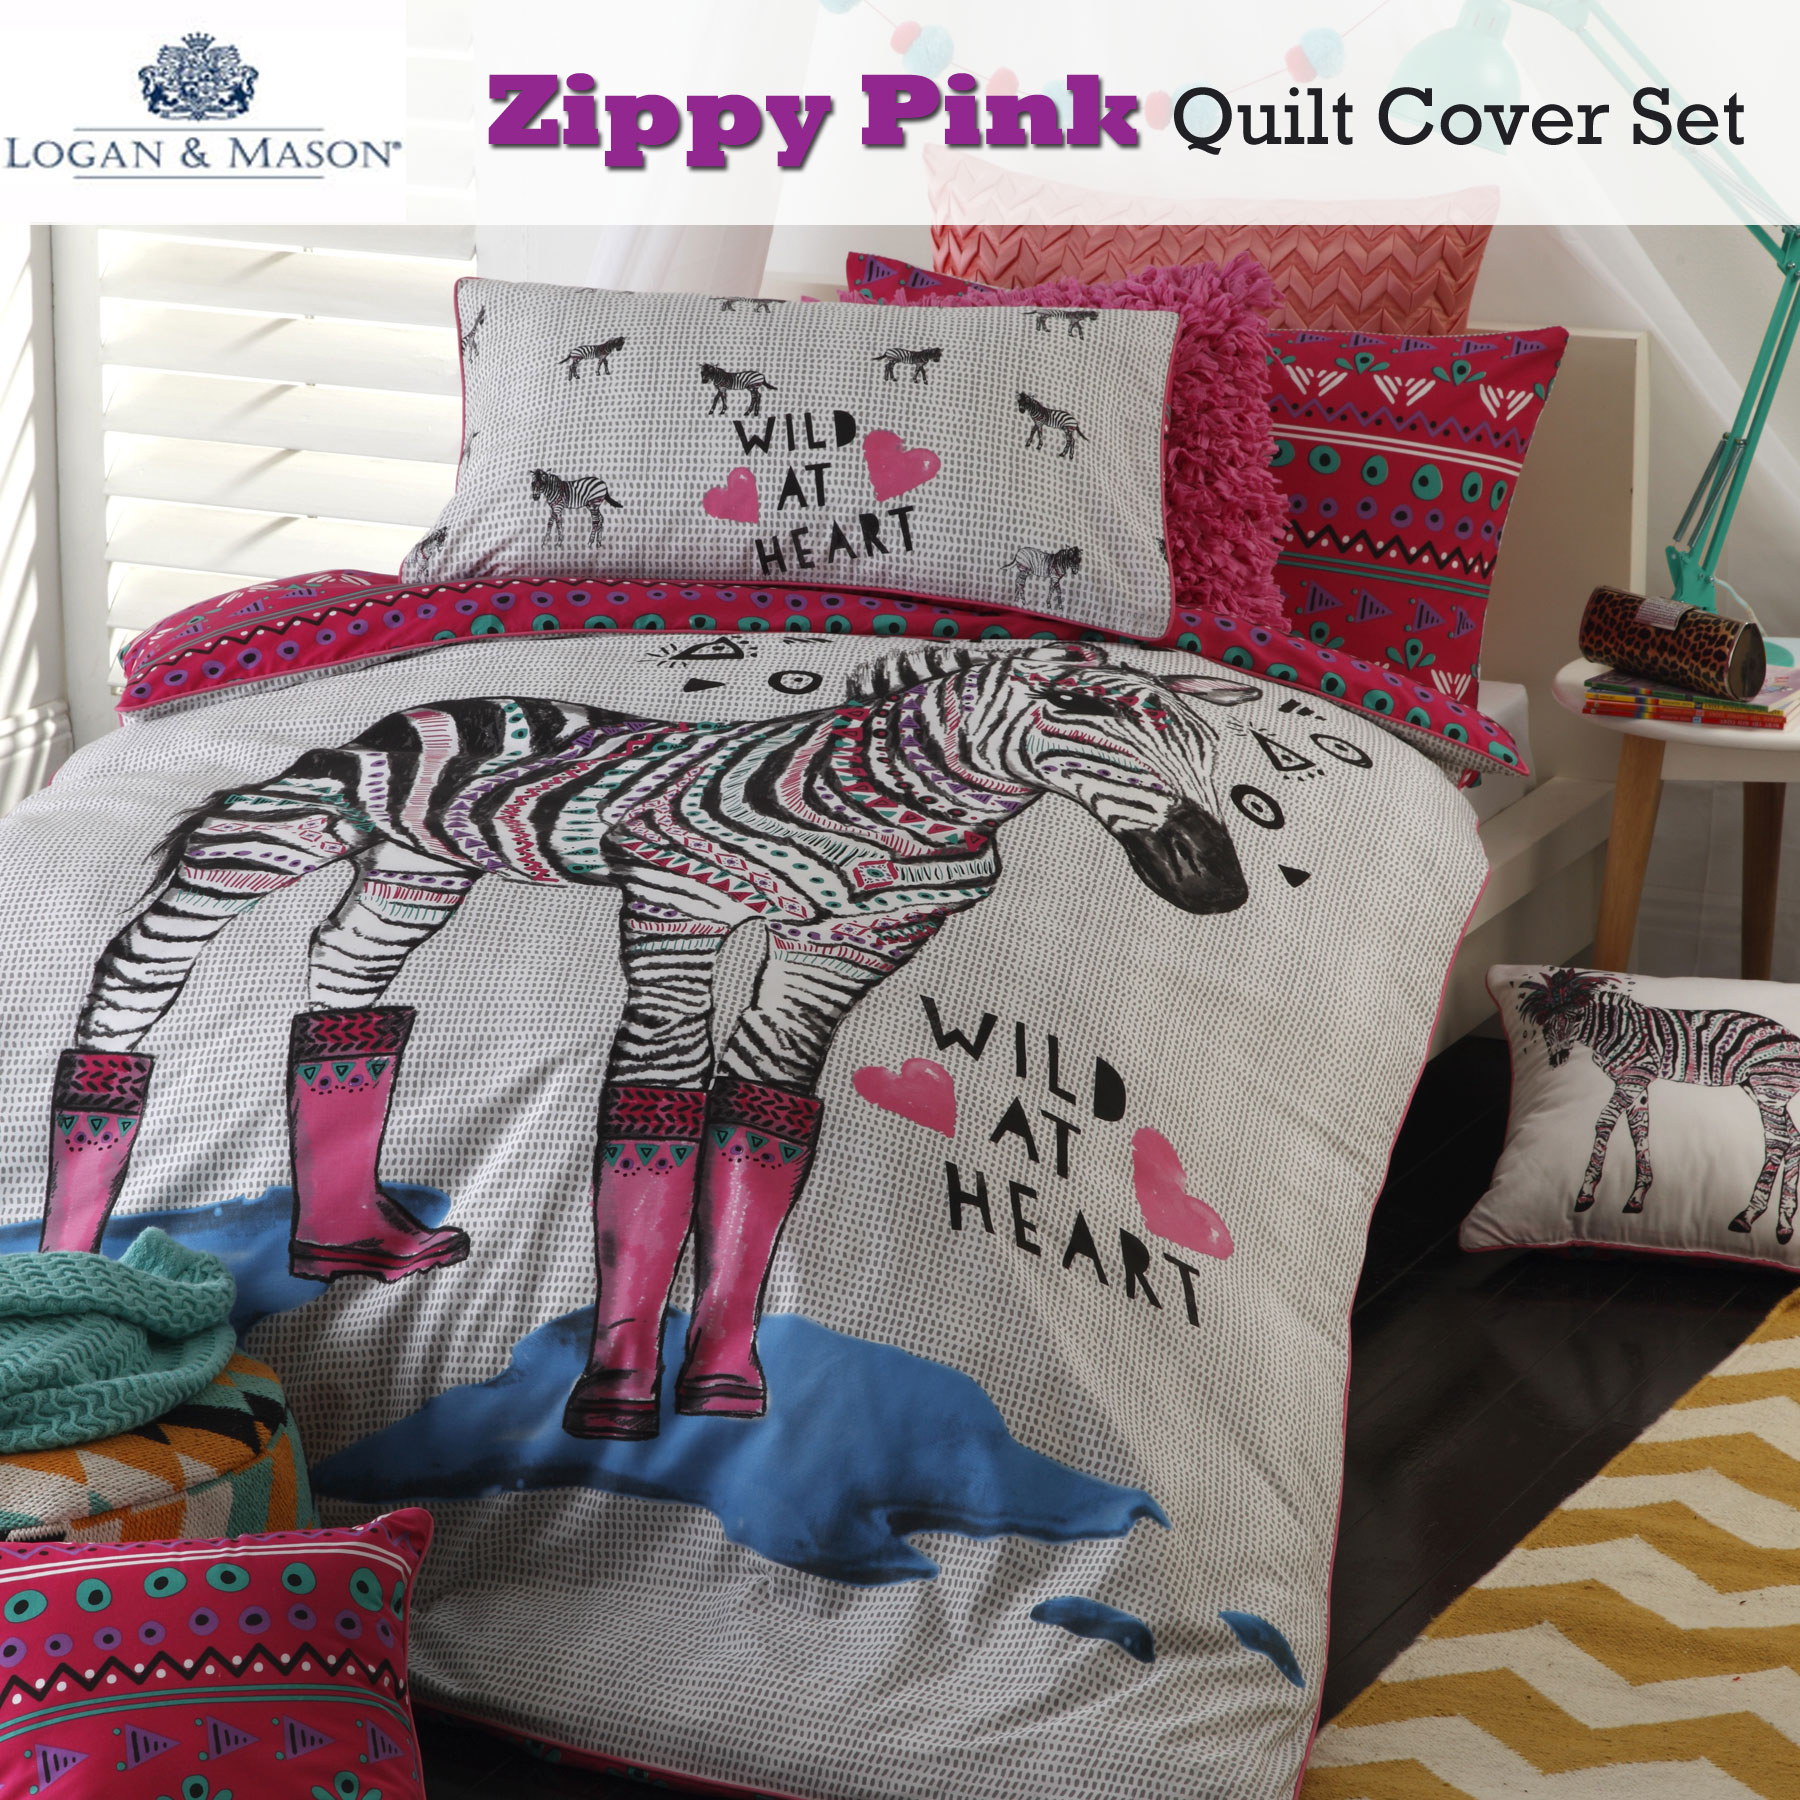 Single Doona Cover Details About Zippy Zebra Heart Pink Girls Quilt Cover Set By Logan Mason Single Double